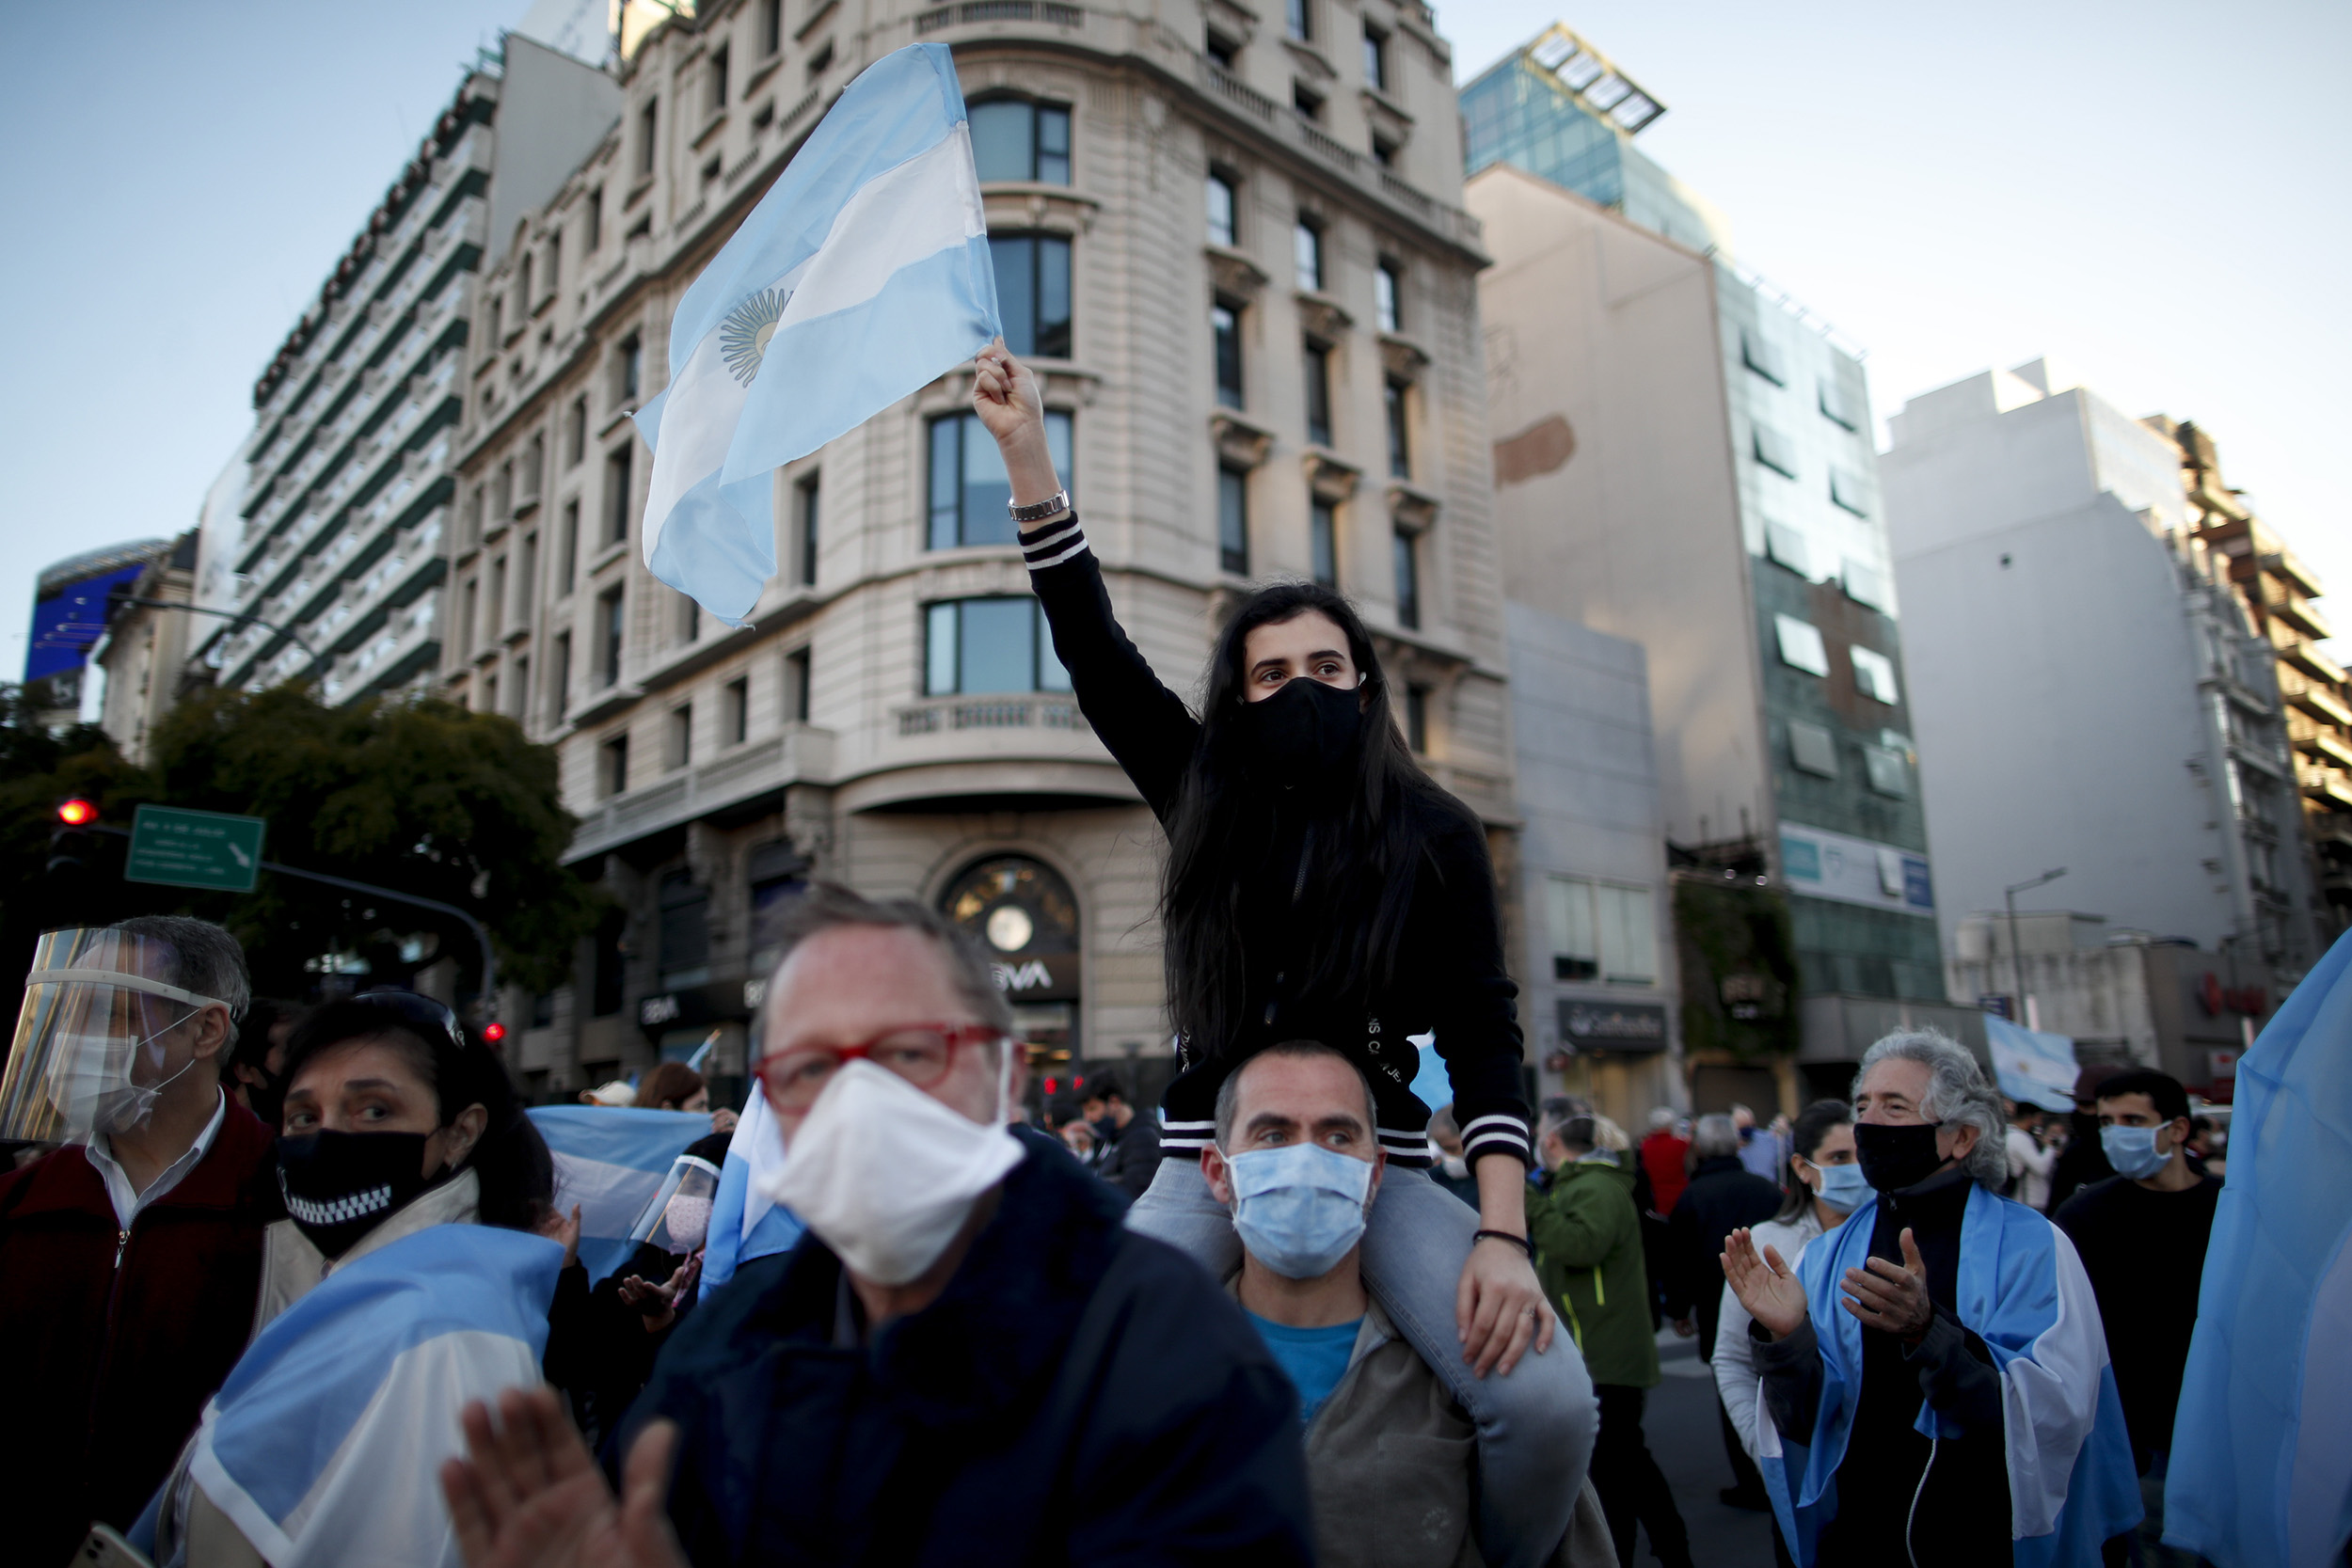 People protest the government's quarantine policies to contain Covid-19 in Buenos Aires, Argentina, on Monday, August 17.